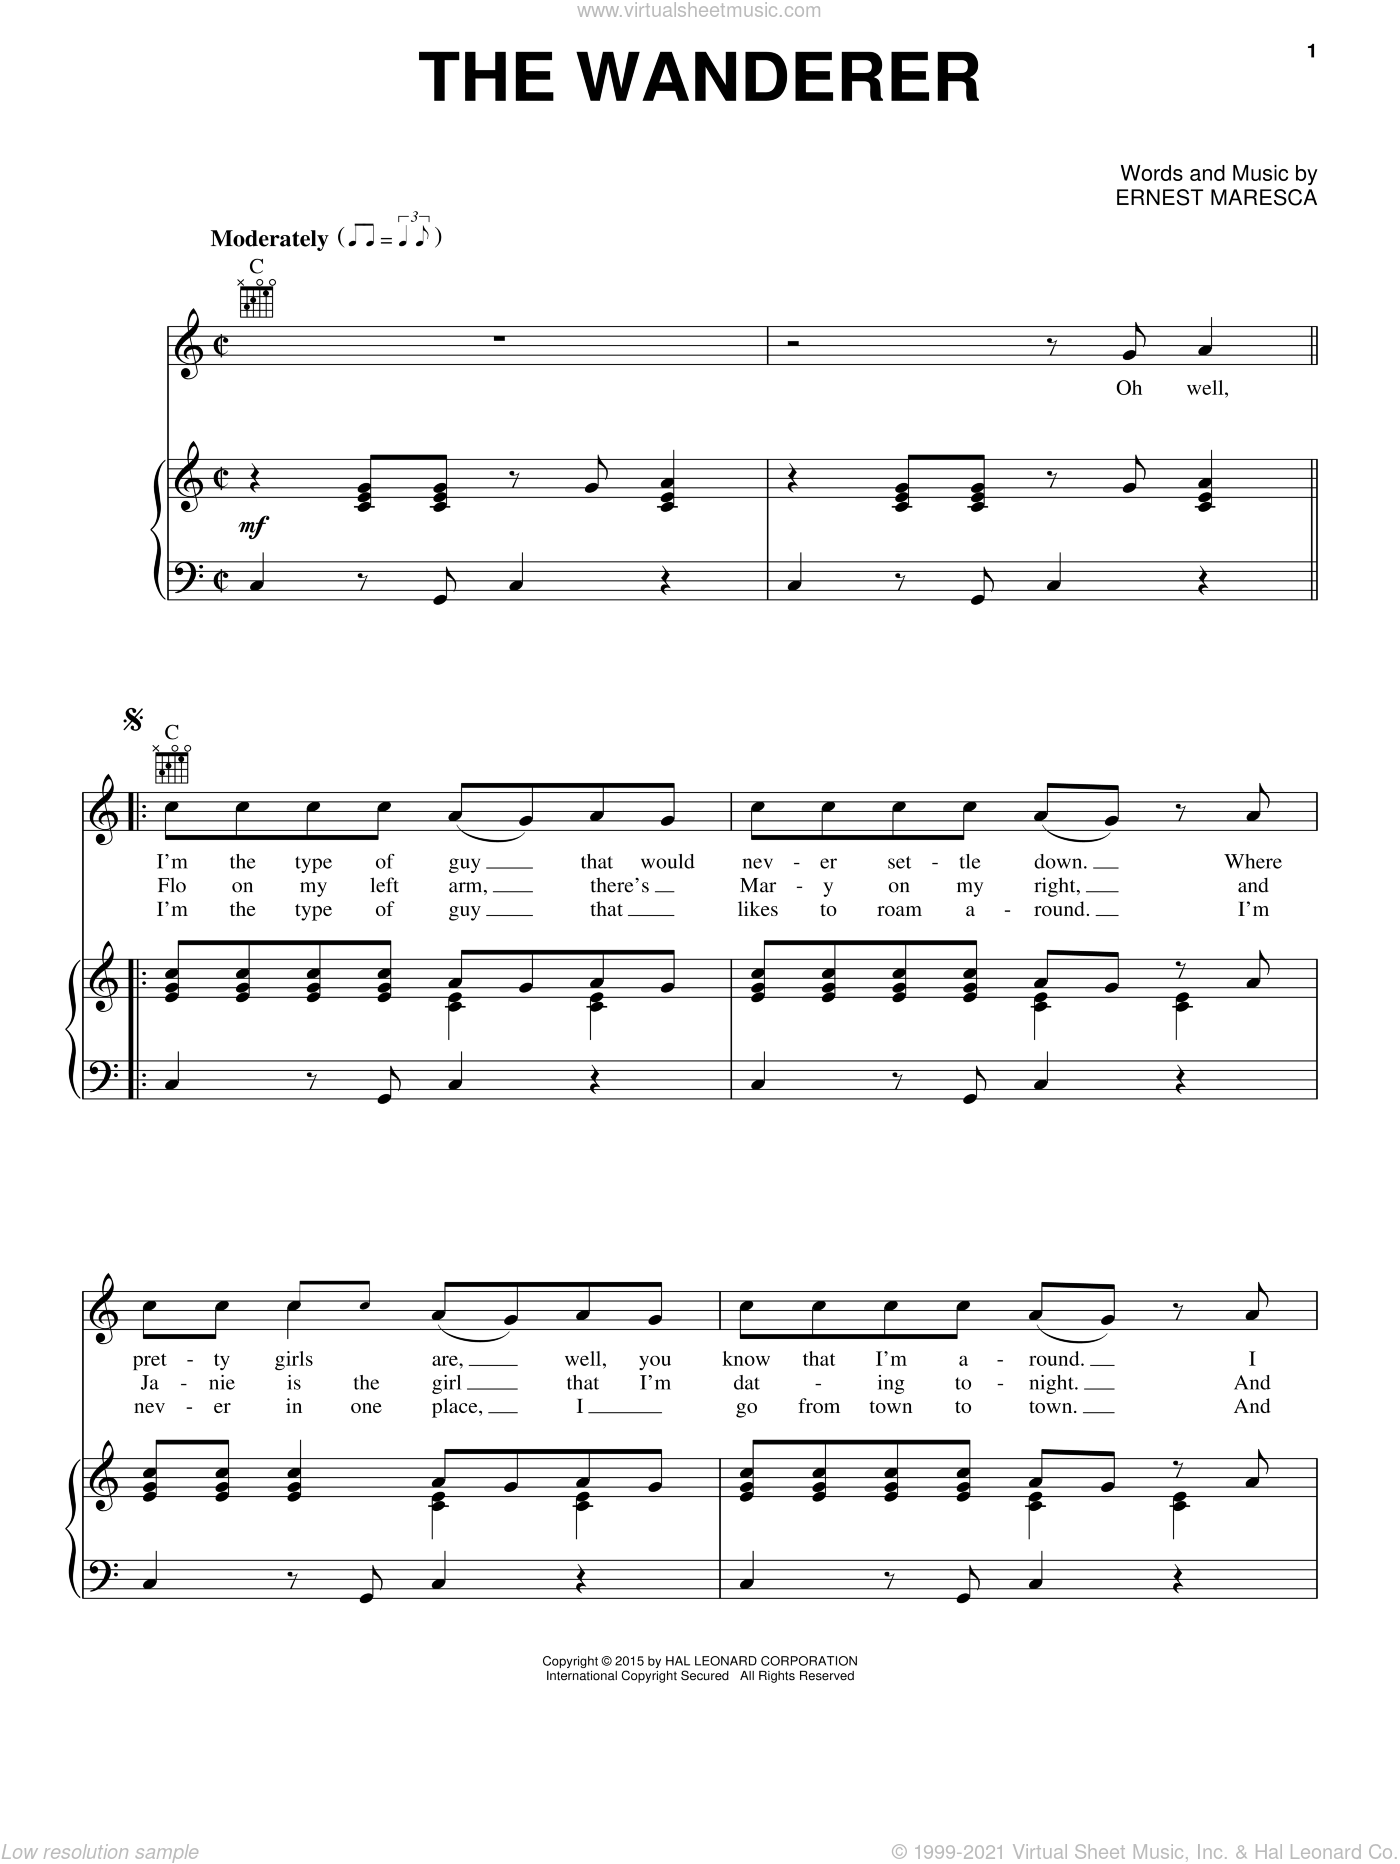 The Wanderer sheet music for voice, piano or guitar by Dion and Ernie Maresca, intermediate